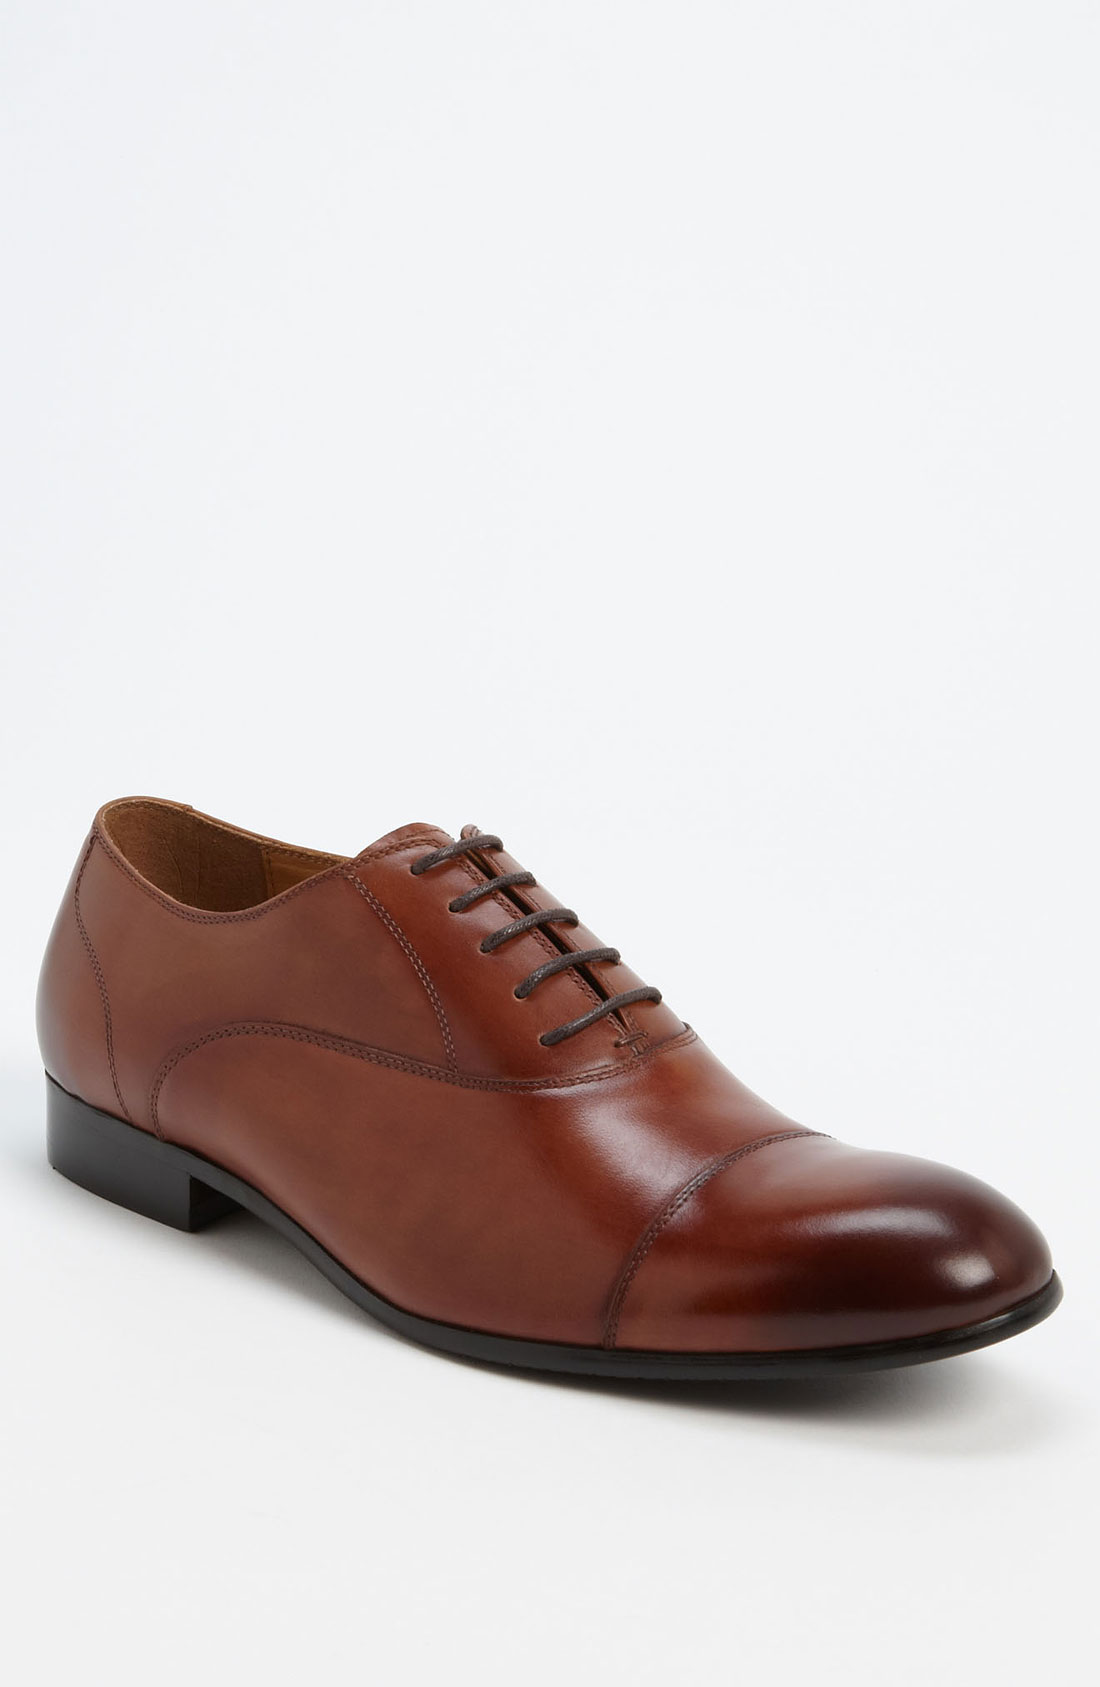 Aldo Johniken Cap Toe Oxford In Brown For Men Tan Lyst